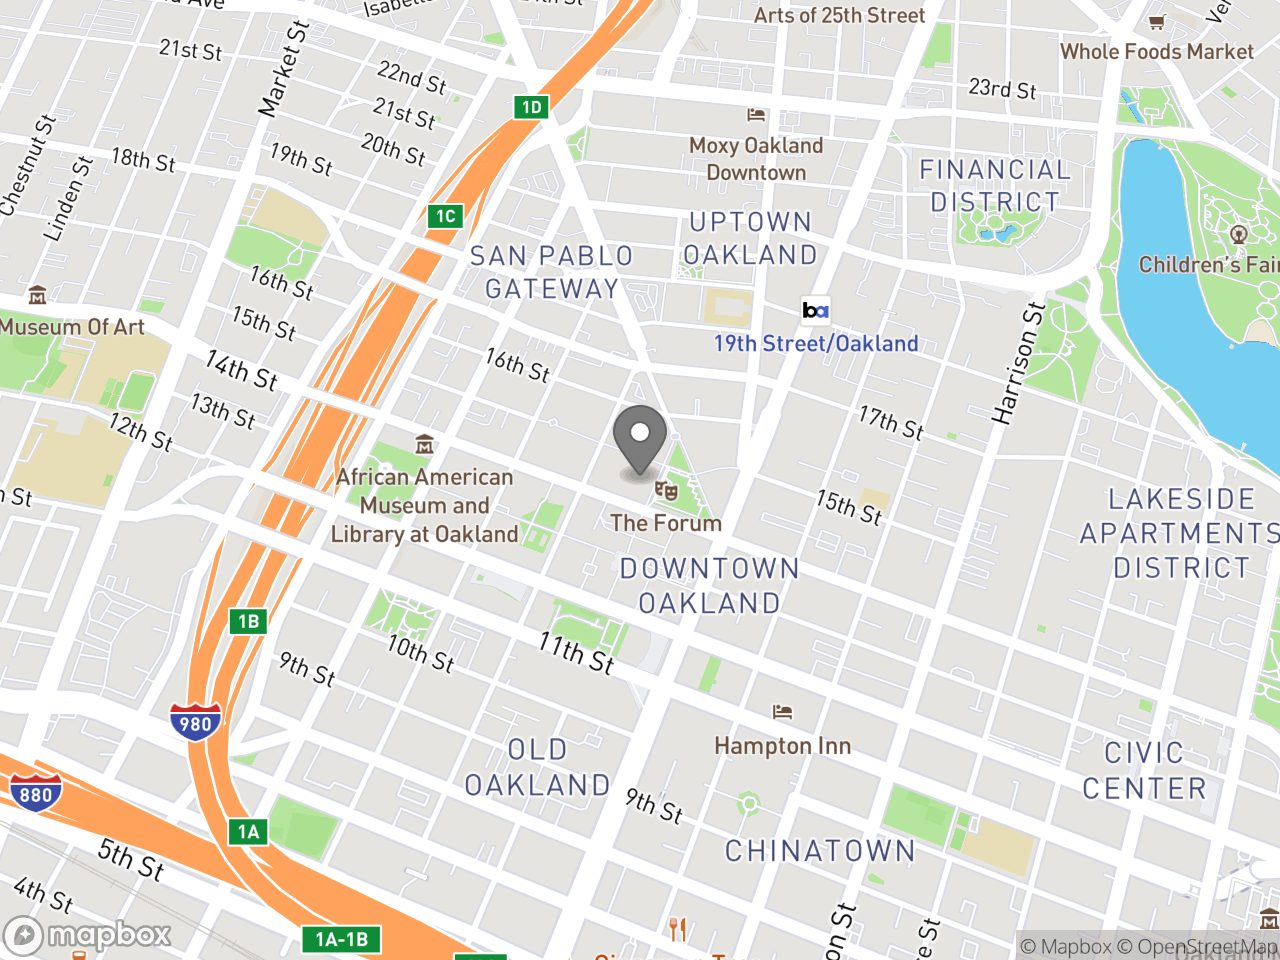 Map location for Cannabis Permit Process, located at 1 Frank H. Ogawa Plaza in Oakland, CA 94612